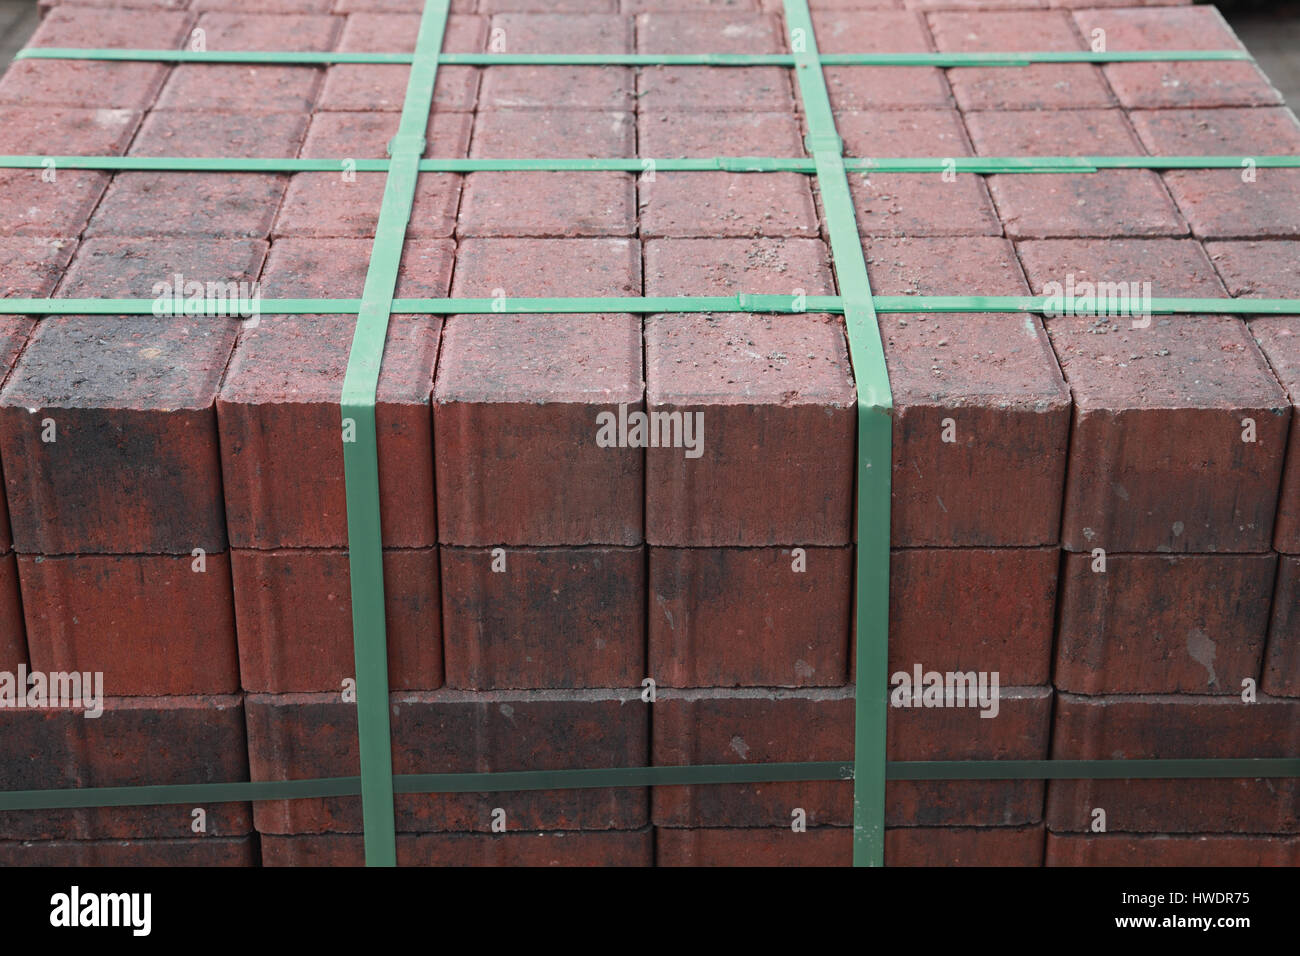 Pallet of newly delivered red bricks tied together with green tape - Stock Image